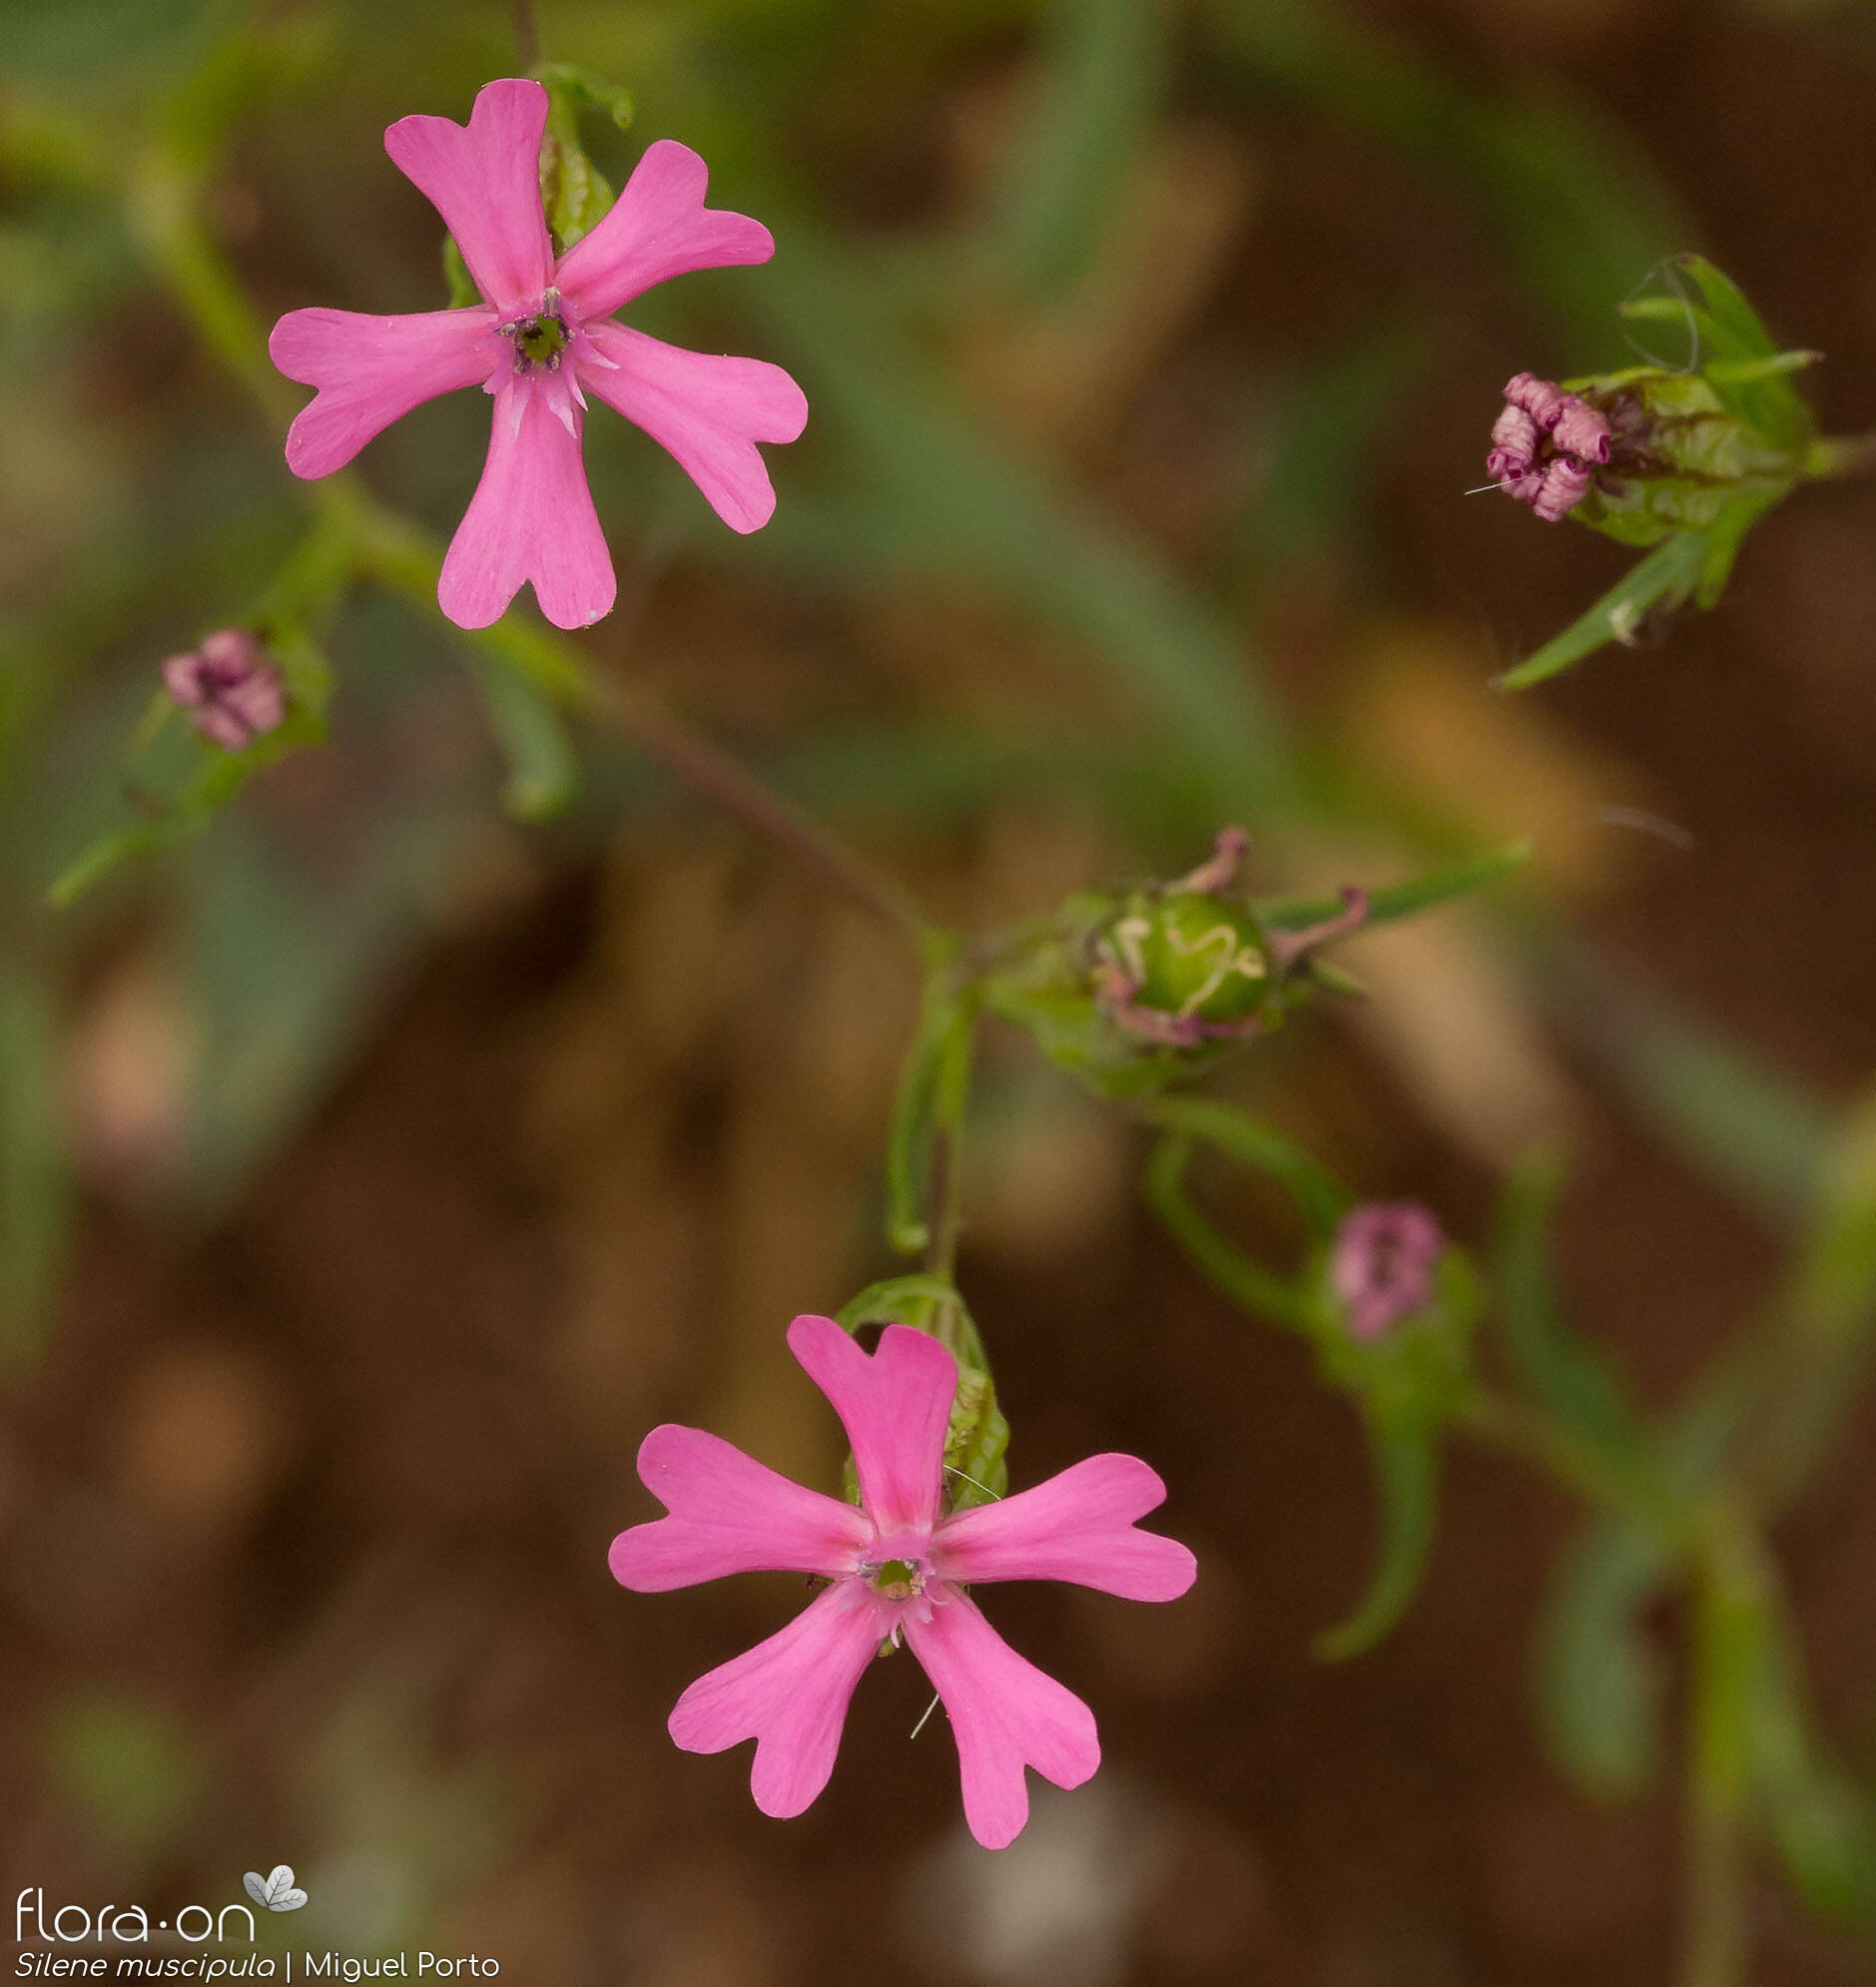 Silene muscipula - Flor (geral) | Miguel Porto; CC BY-NC 4.0